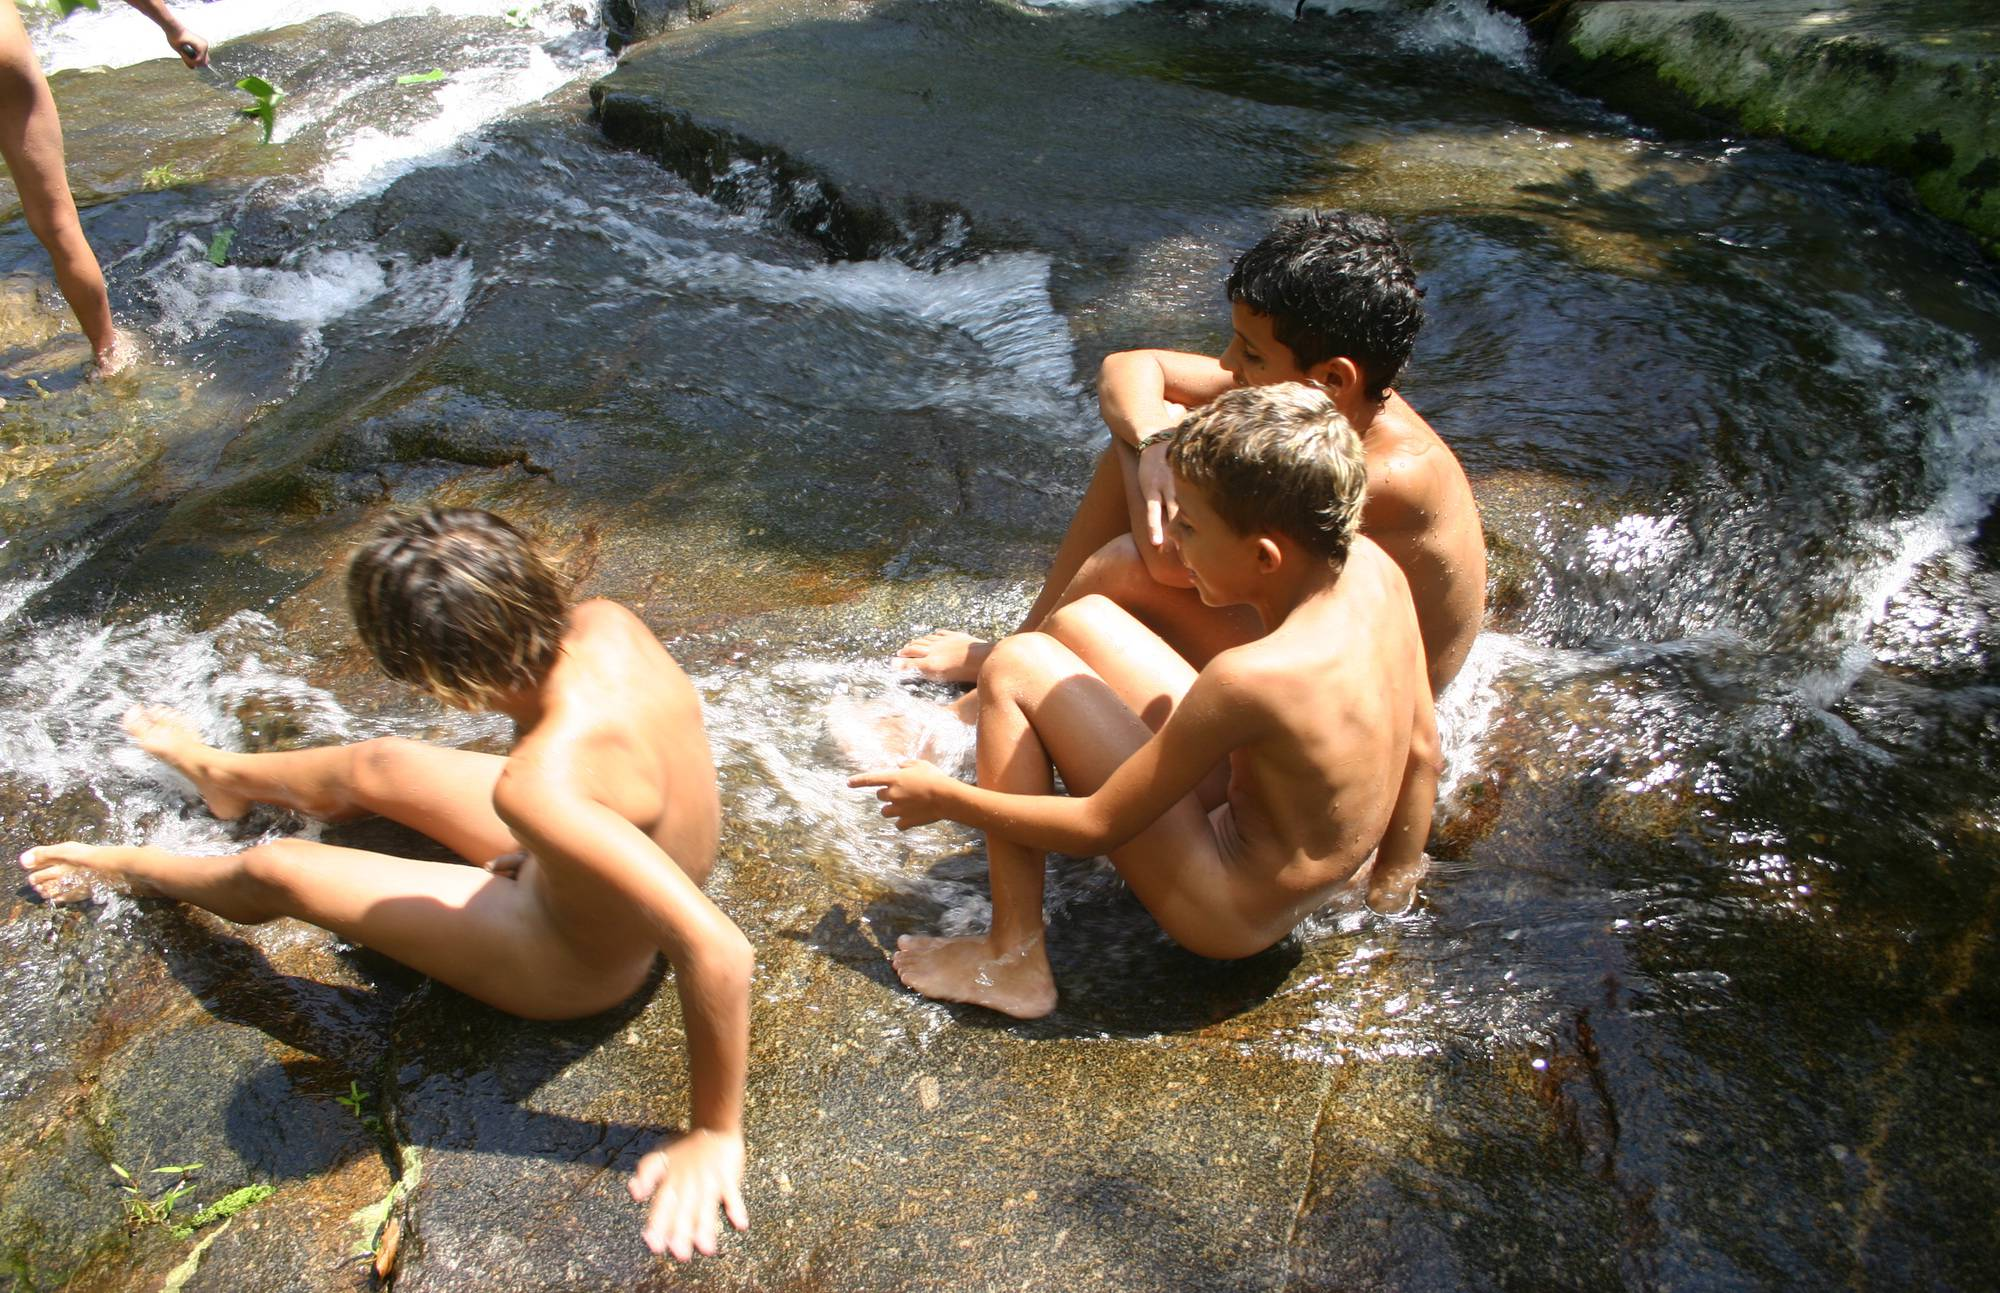 Purenudism Images-Brazilian Water Cliff Play - 1